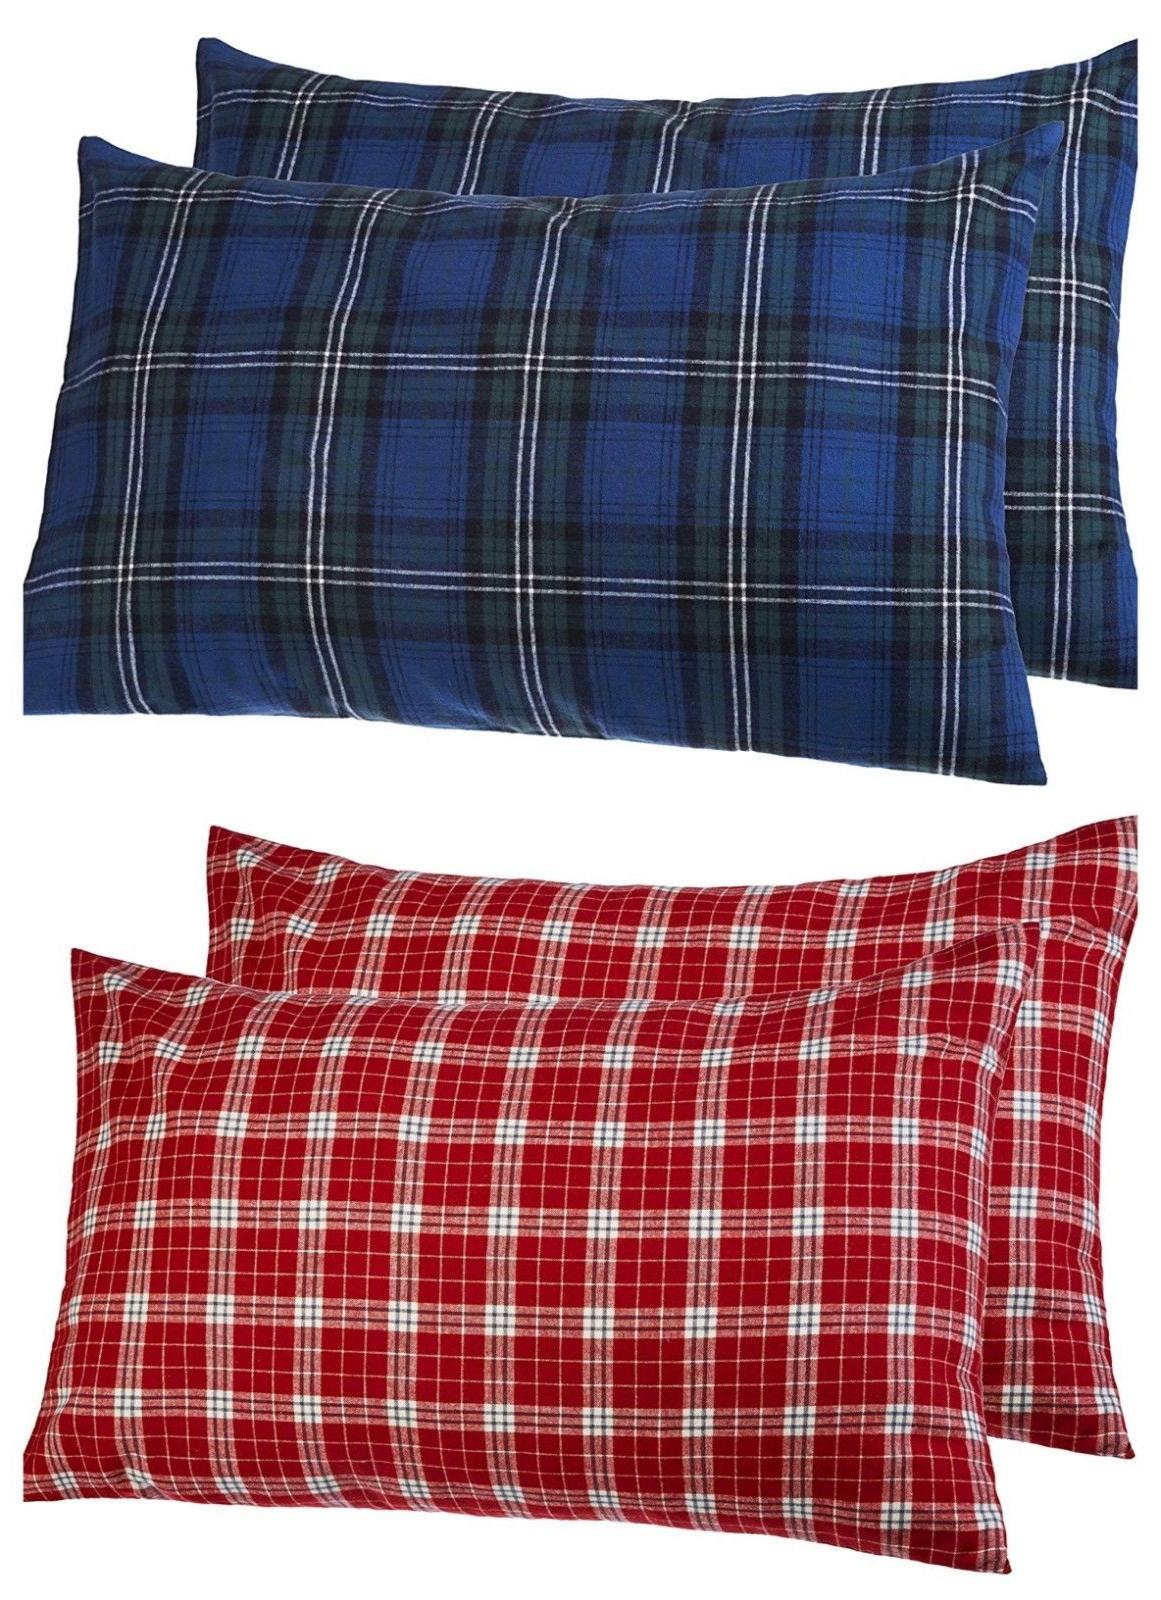 Pillow Case Cover Set Pillowcases Plaid Flannel King Size Pi